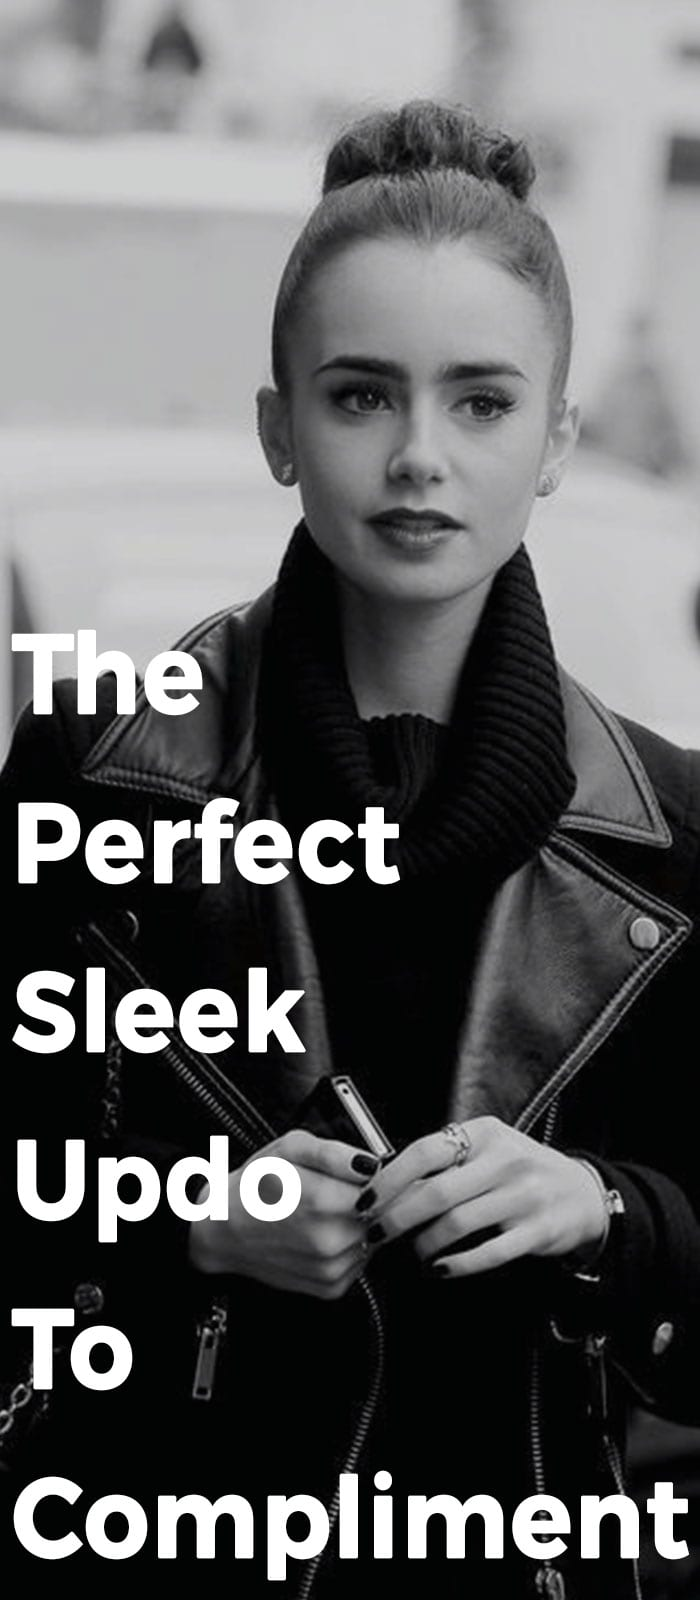 The Perfect Sleek Updo To Compliment